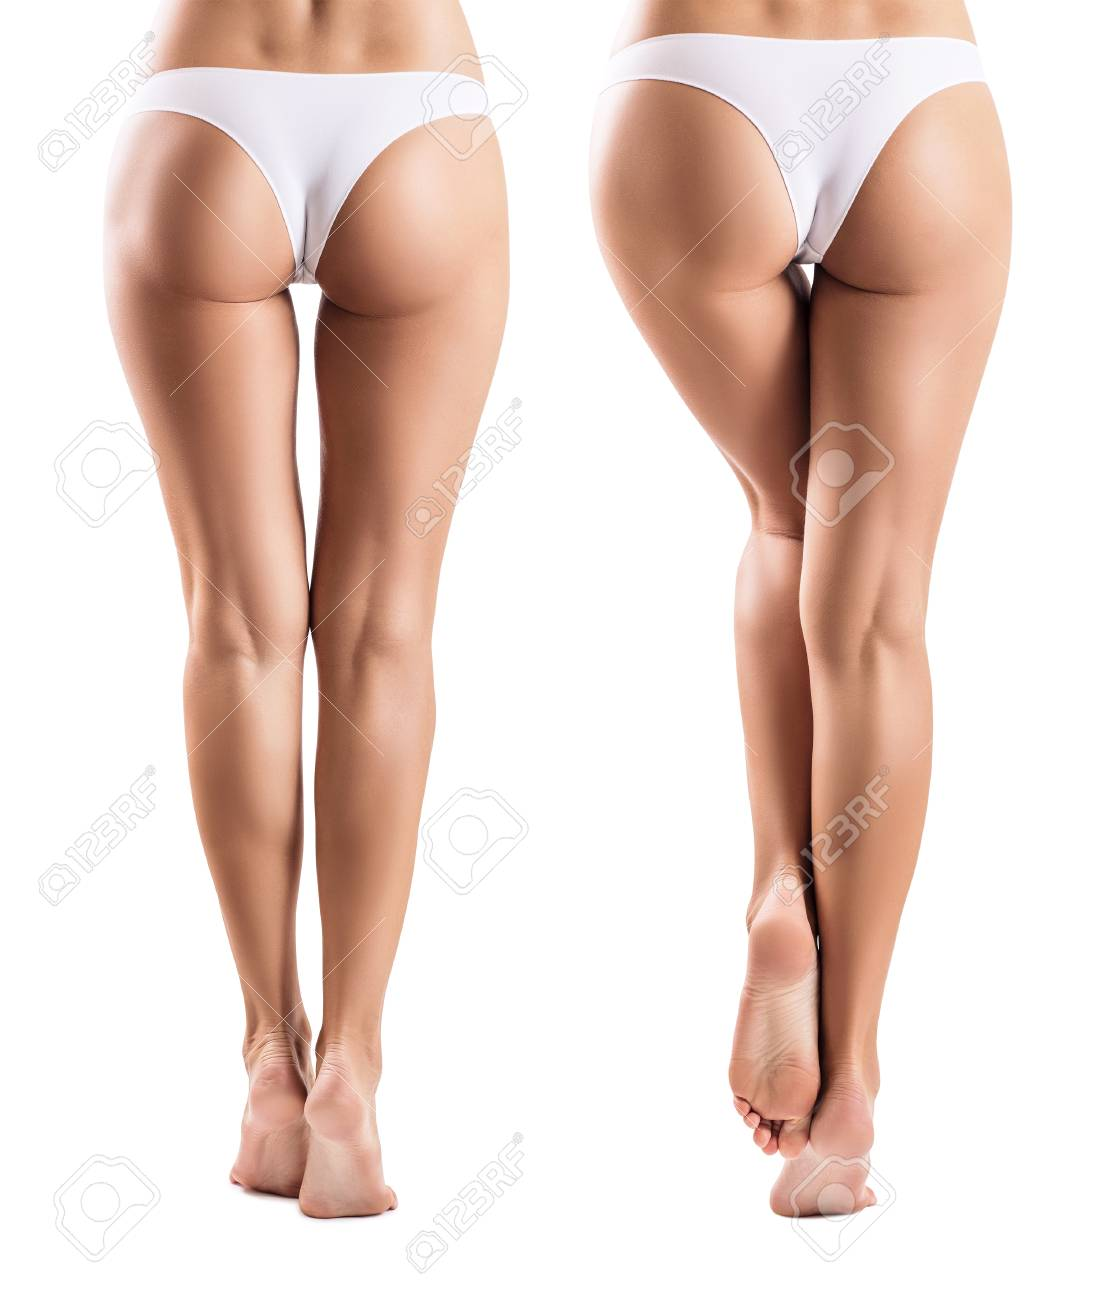 Collage with perfect legs from different view. - 91087056